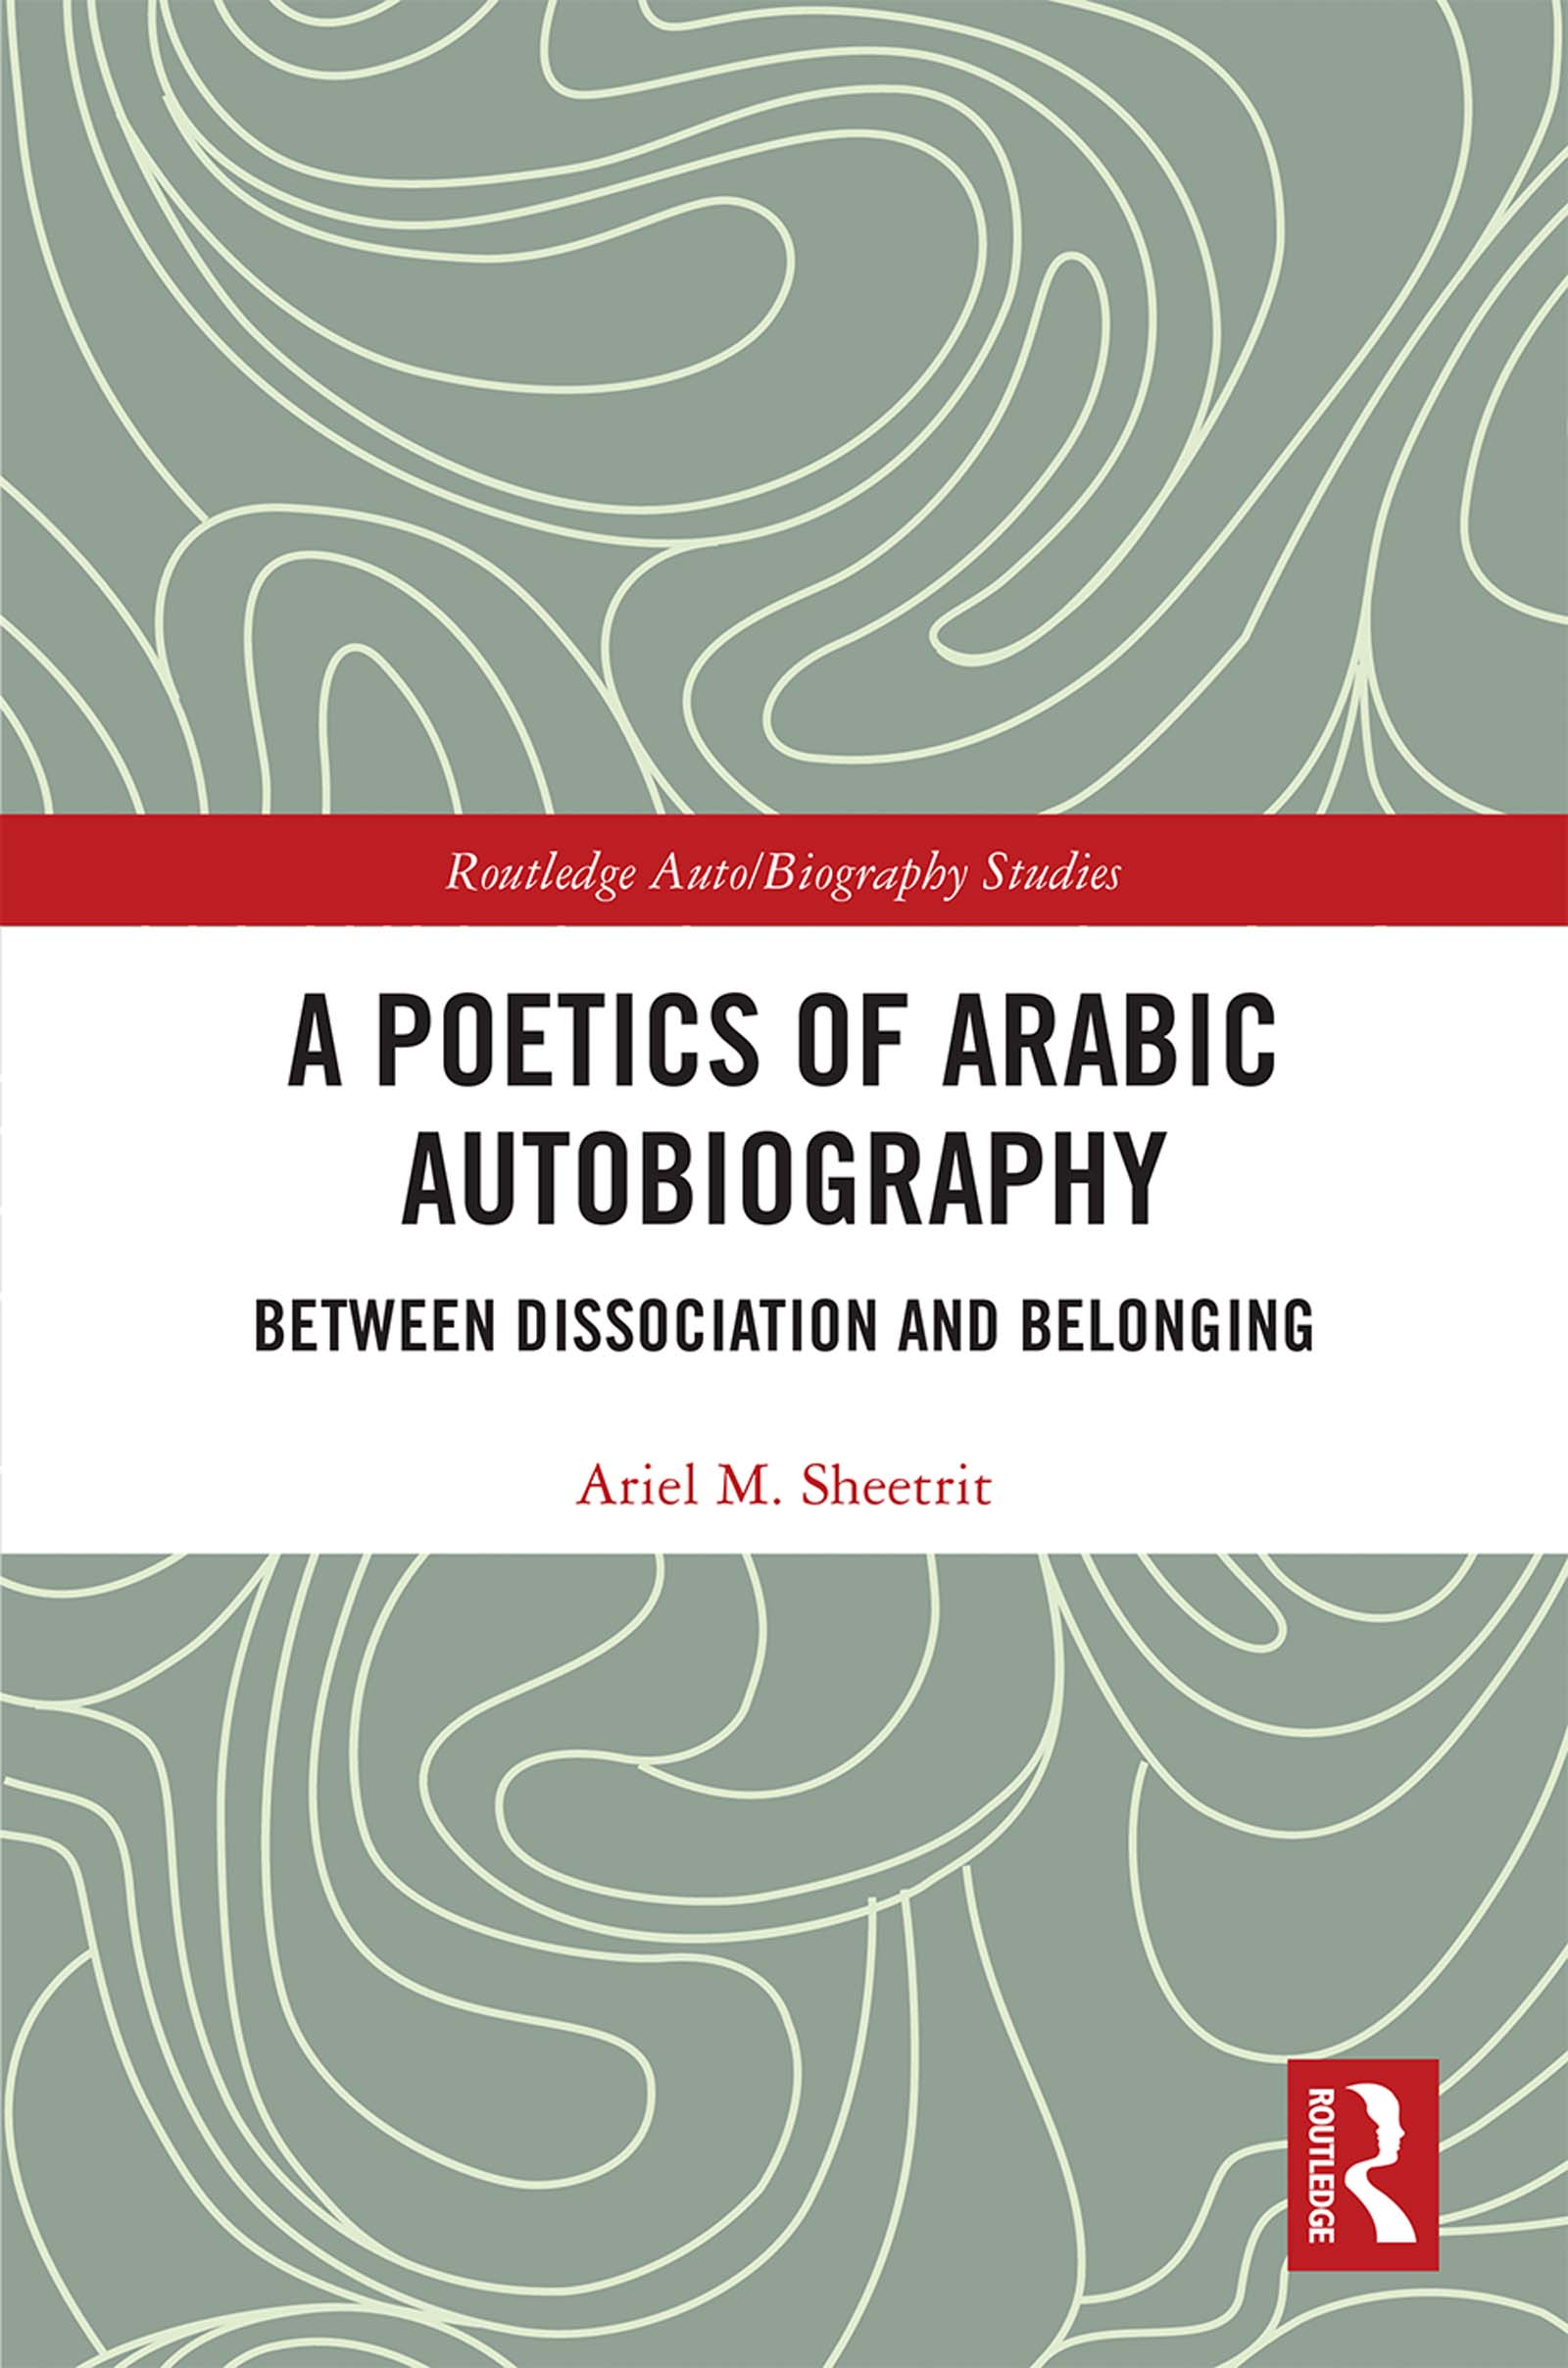 A Poetics of Arabic Autobiography: Between Dissociation and Belonging book cover